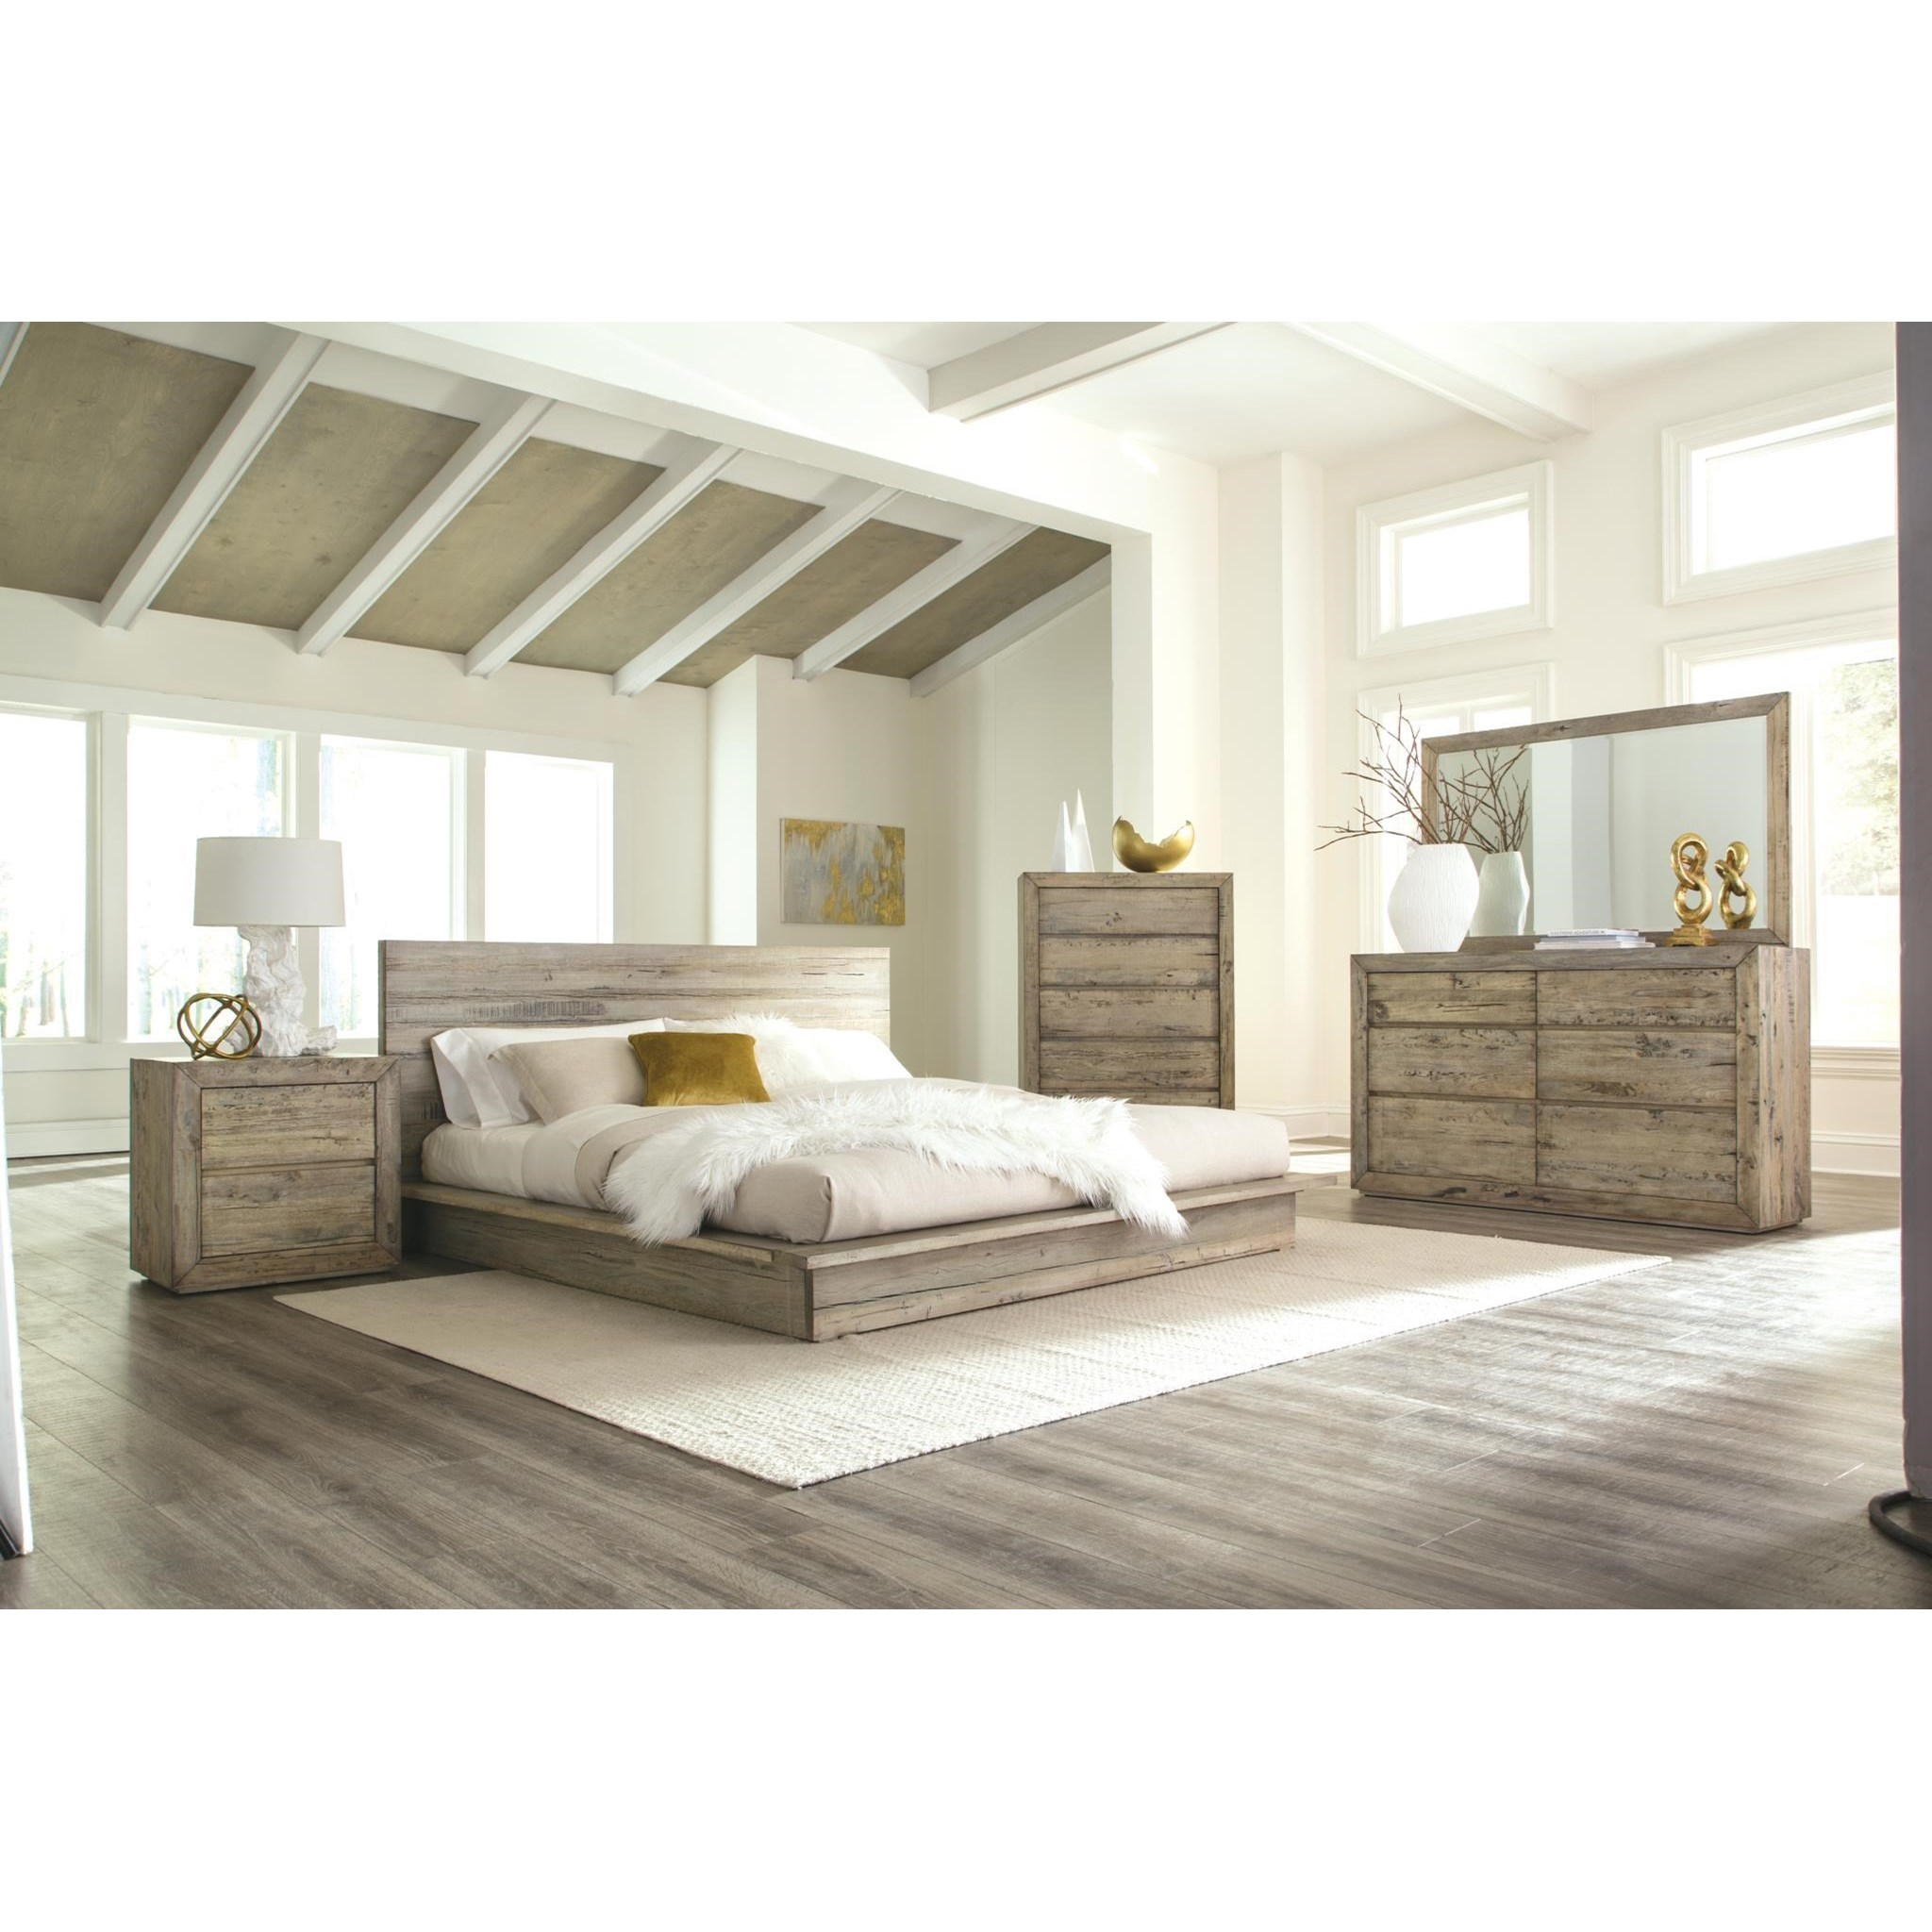 Renewal King Bedroom Group by Napa Furniture Designs at HomeWorld Furniture